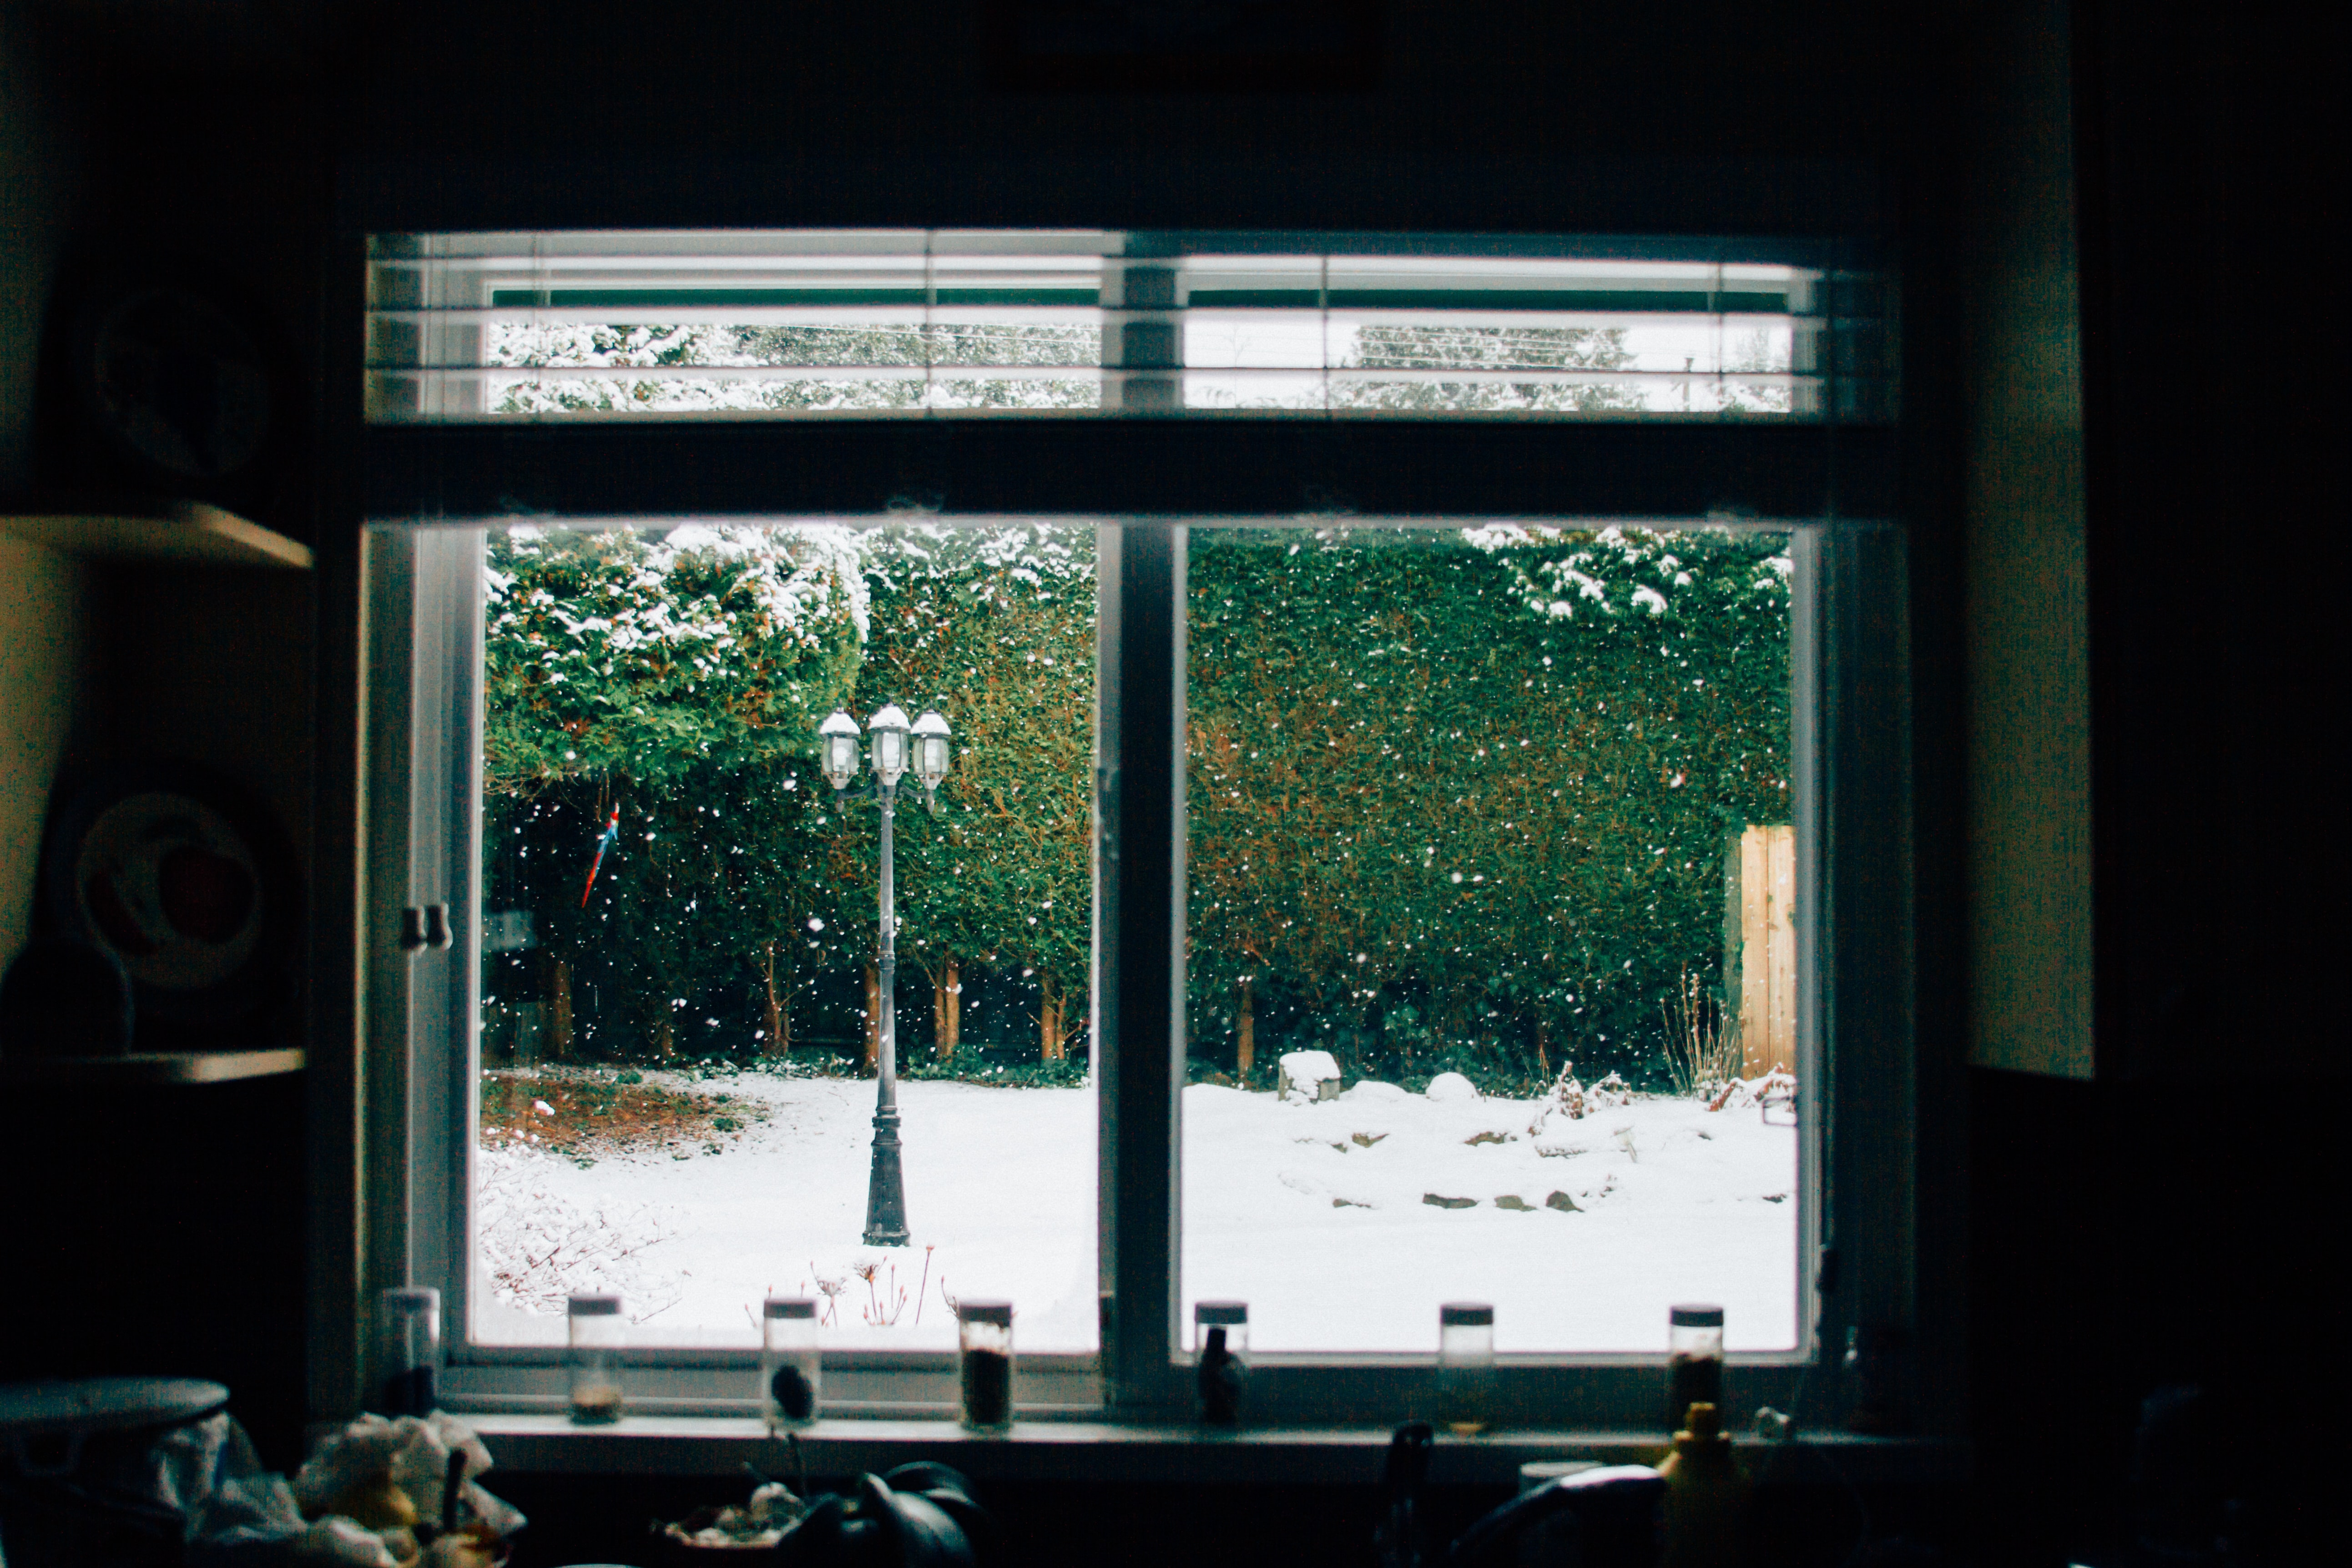 A cozy window looks out to snow falling on a lamppost